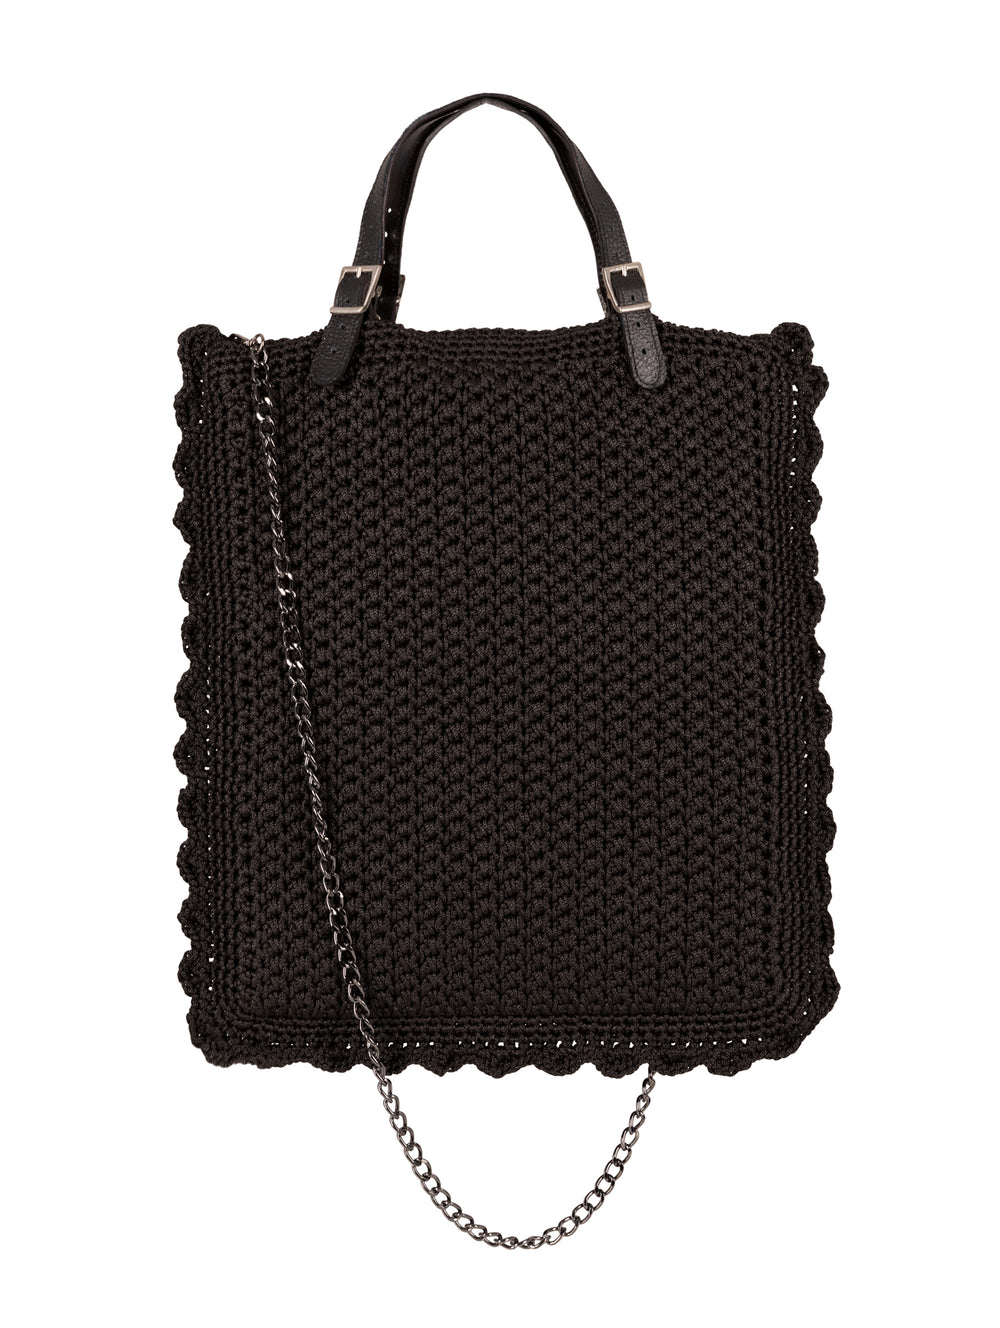 Crochet Bag Black Narrow